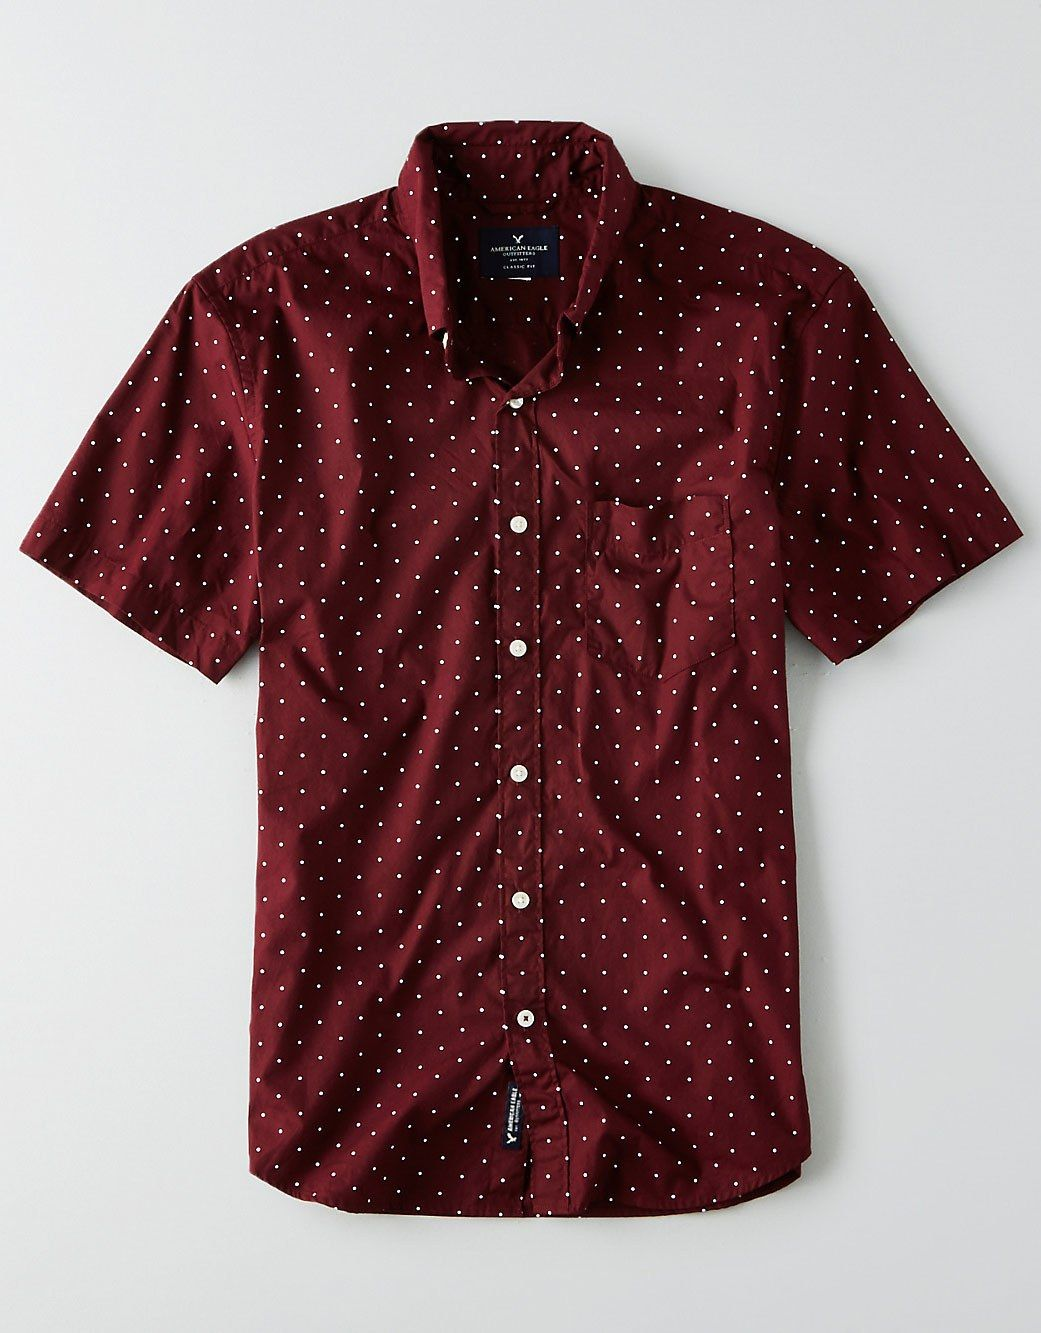 98e200a65f5d The 16 Best Short-Sleeve Summer Button-Ups to Buy Right Now Photos